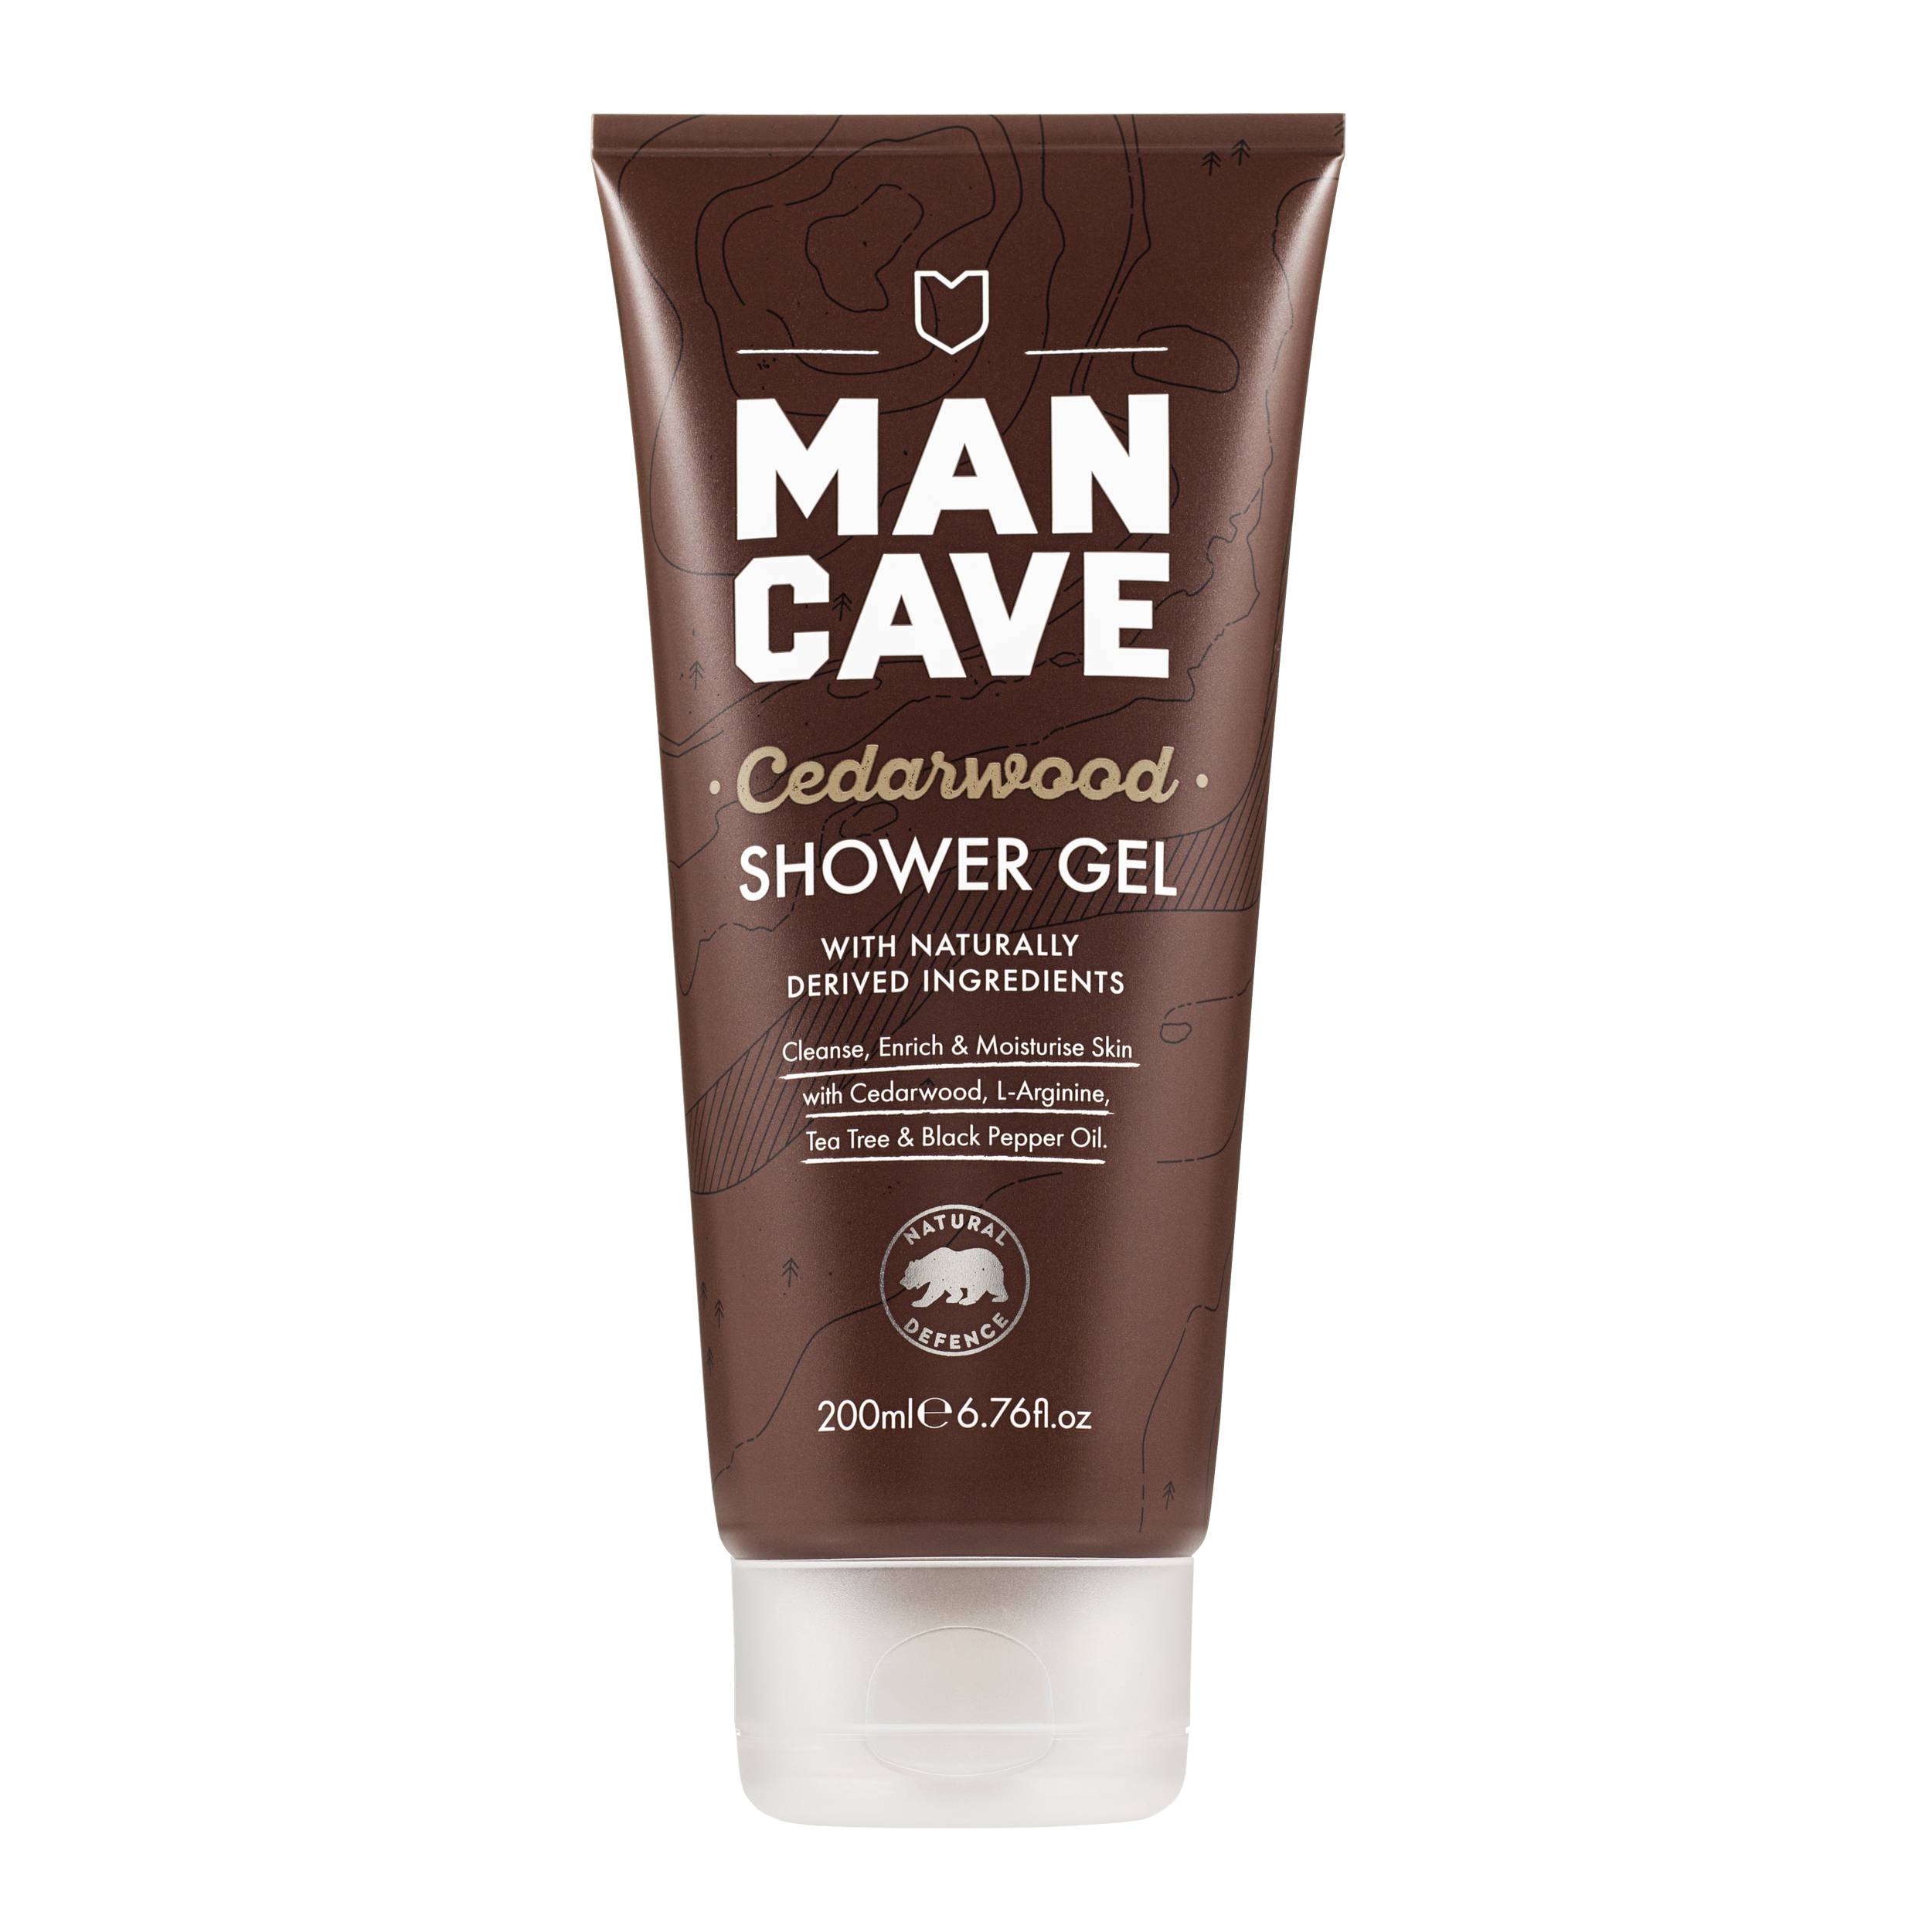 The ManCave cedarwood shower gel  100% recyclable brown tube. Cruelty free certified and vegan friendly.